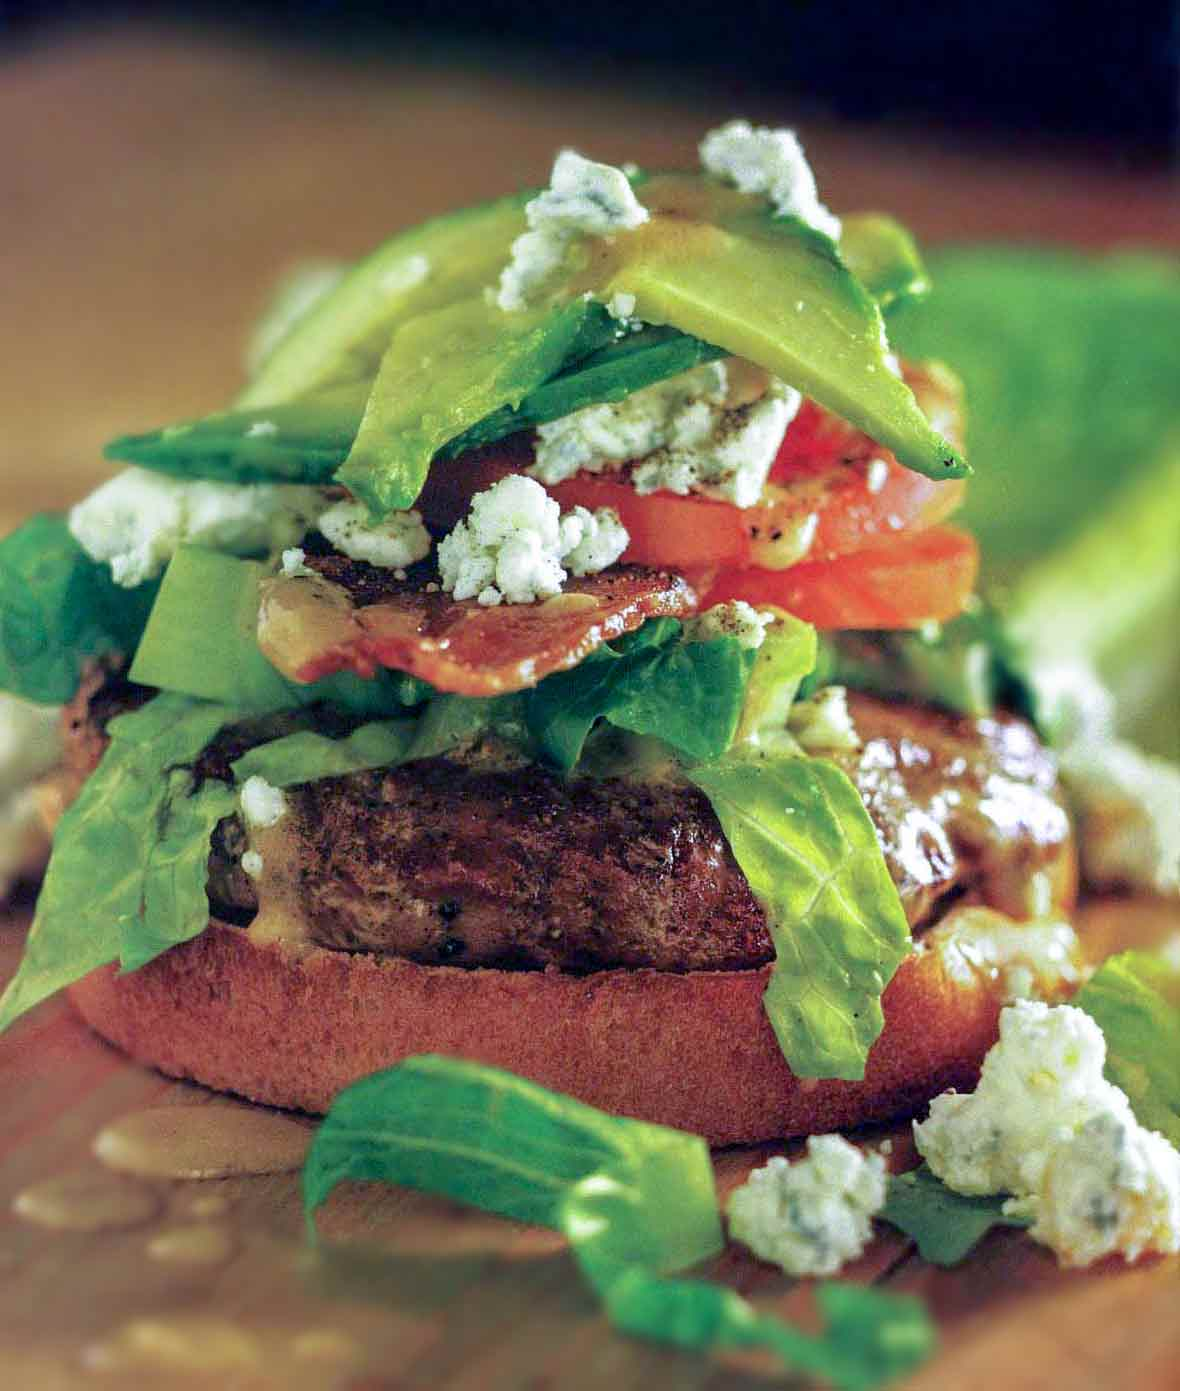 A turkey cobb burger--a turkey hamburger on a bun with lettuce, tomato, bacon, blue cheese, and avocado